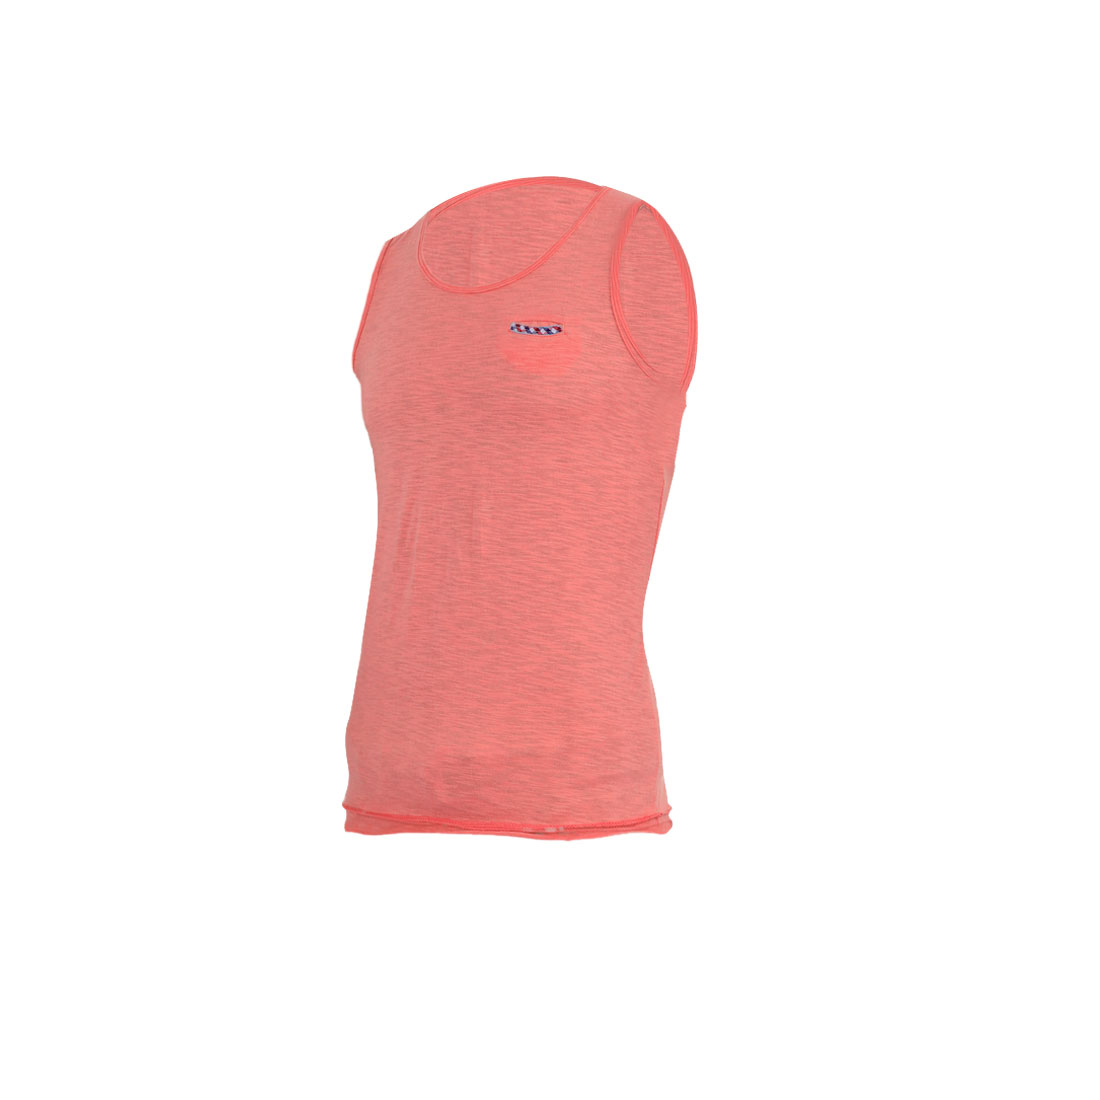 Mens Chic Chest Pocket Stretchy Coral Pink Tank Top S